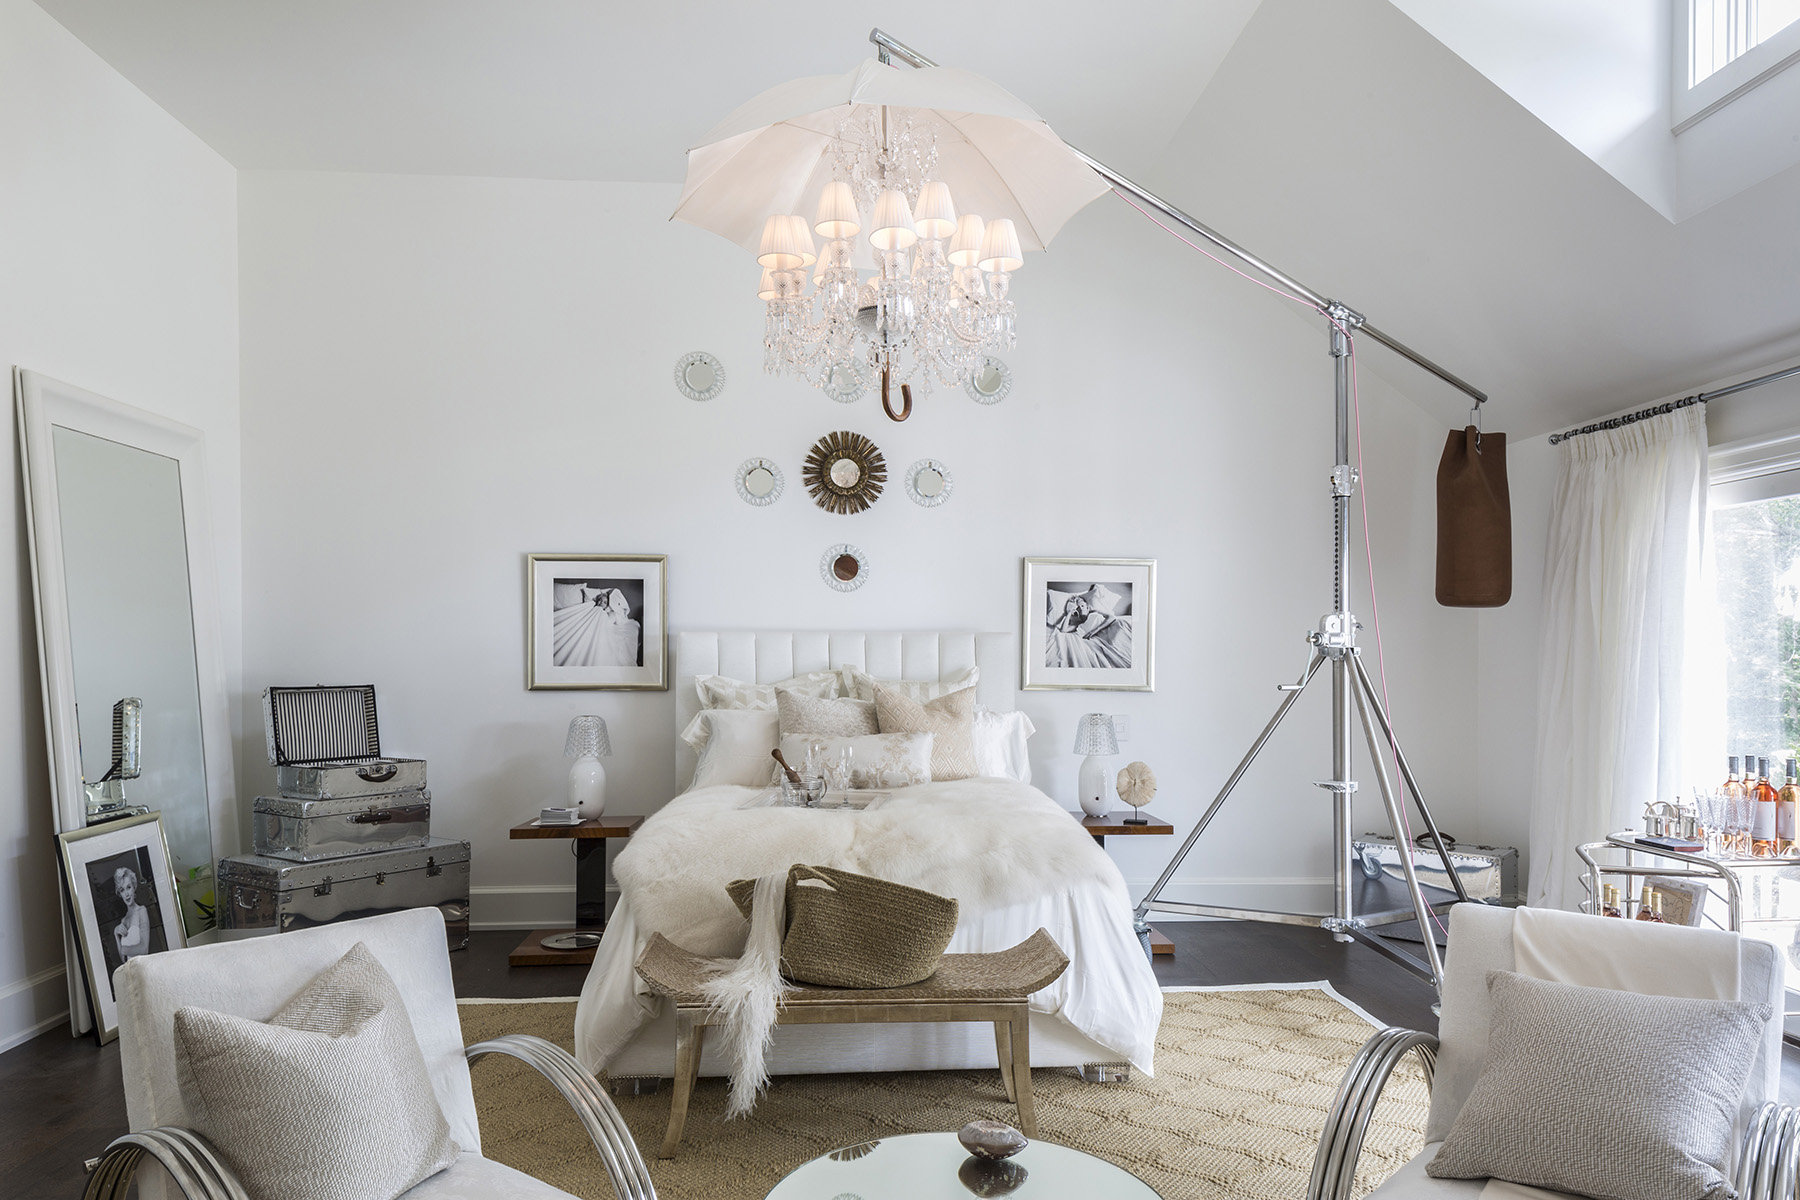 New Kdhamptons Design Diary Take A Tour Inside The First